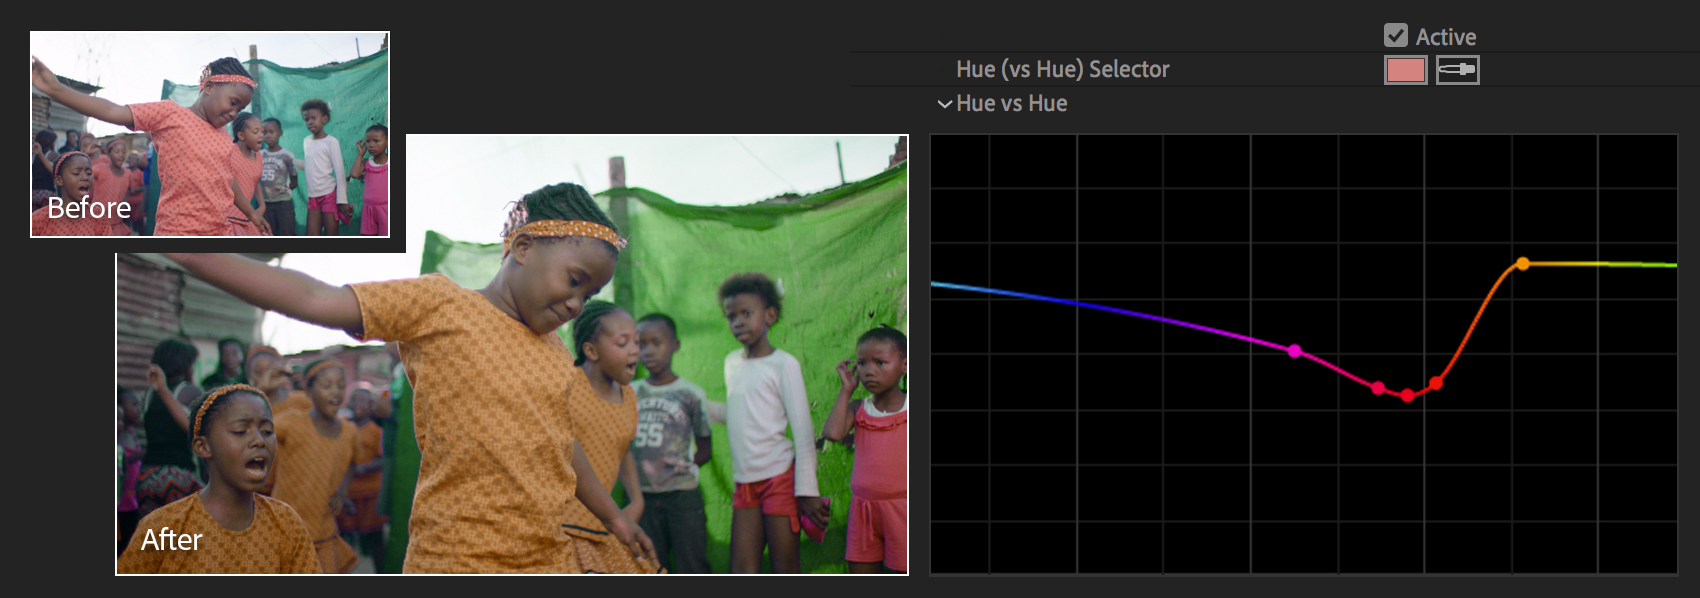 Hue versus Hue curve adjustment